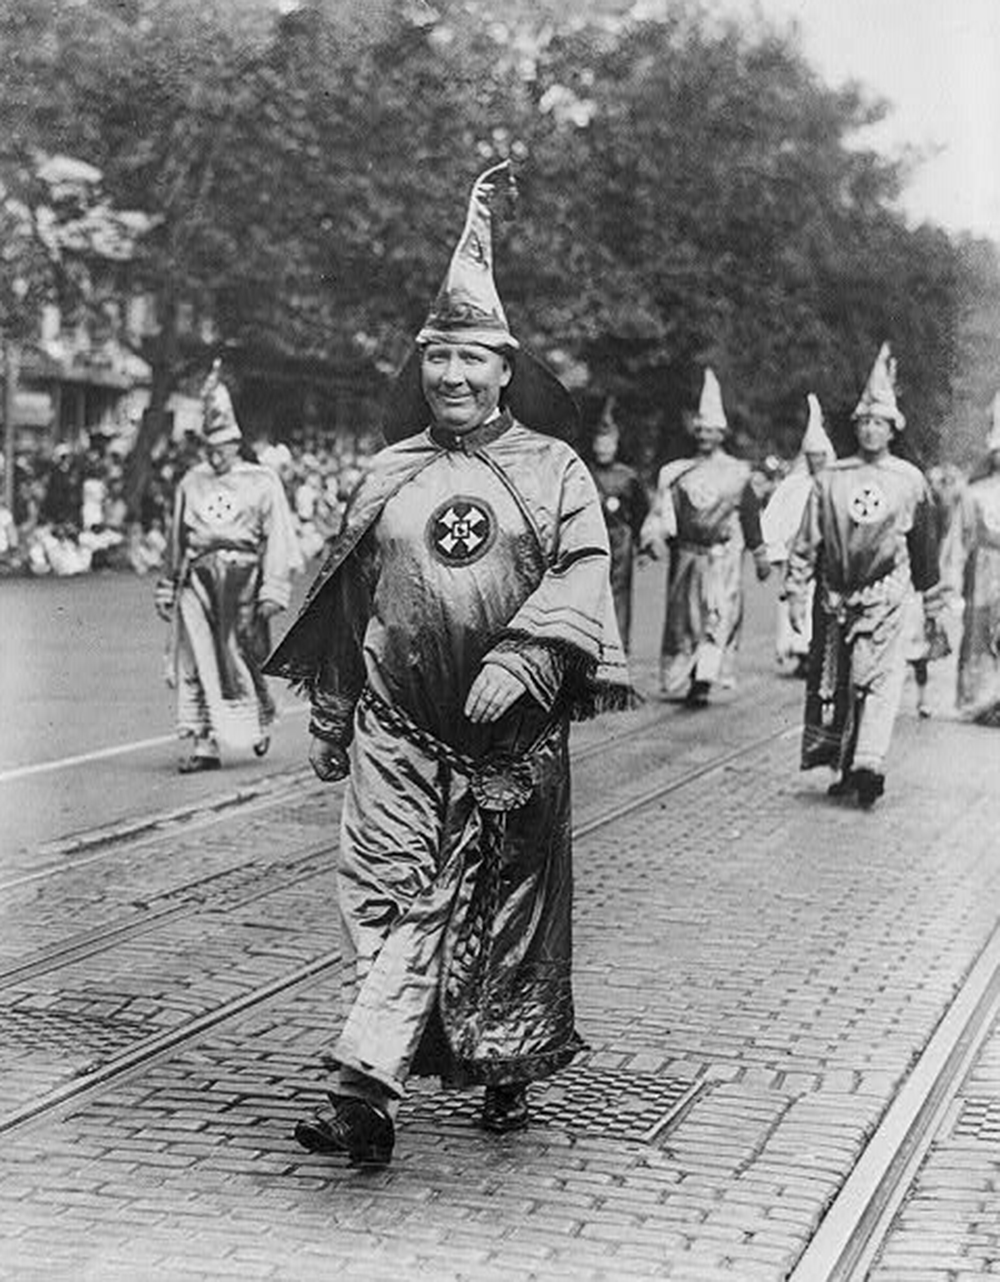 Dr. H.W. Evans, Imperial Wizard of the Ku Klux Klan, 1926. Library of Congress, Prints and Photographs Division.